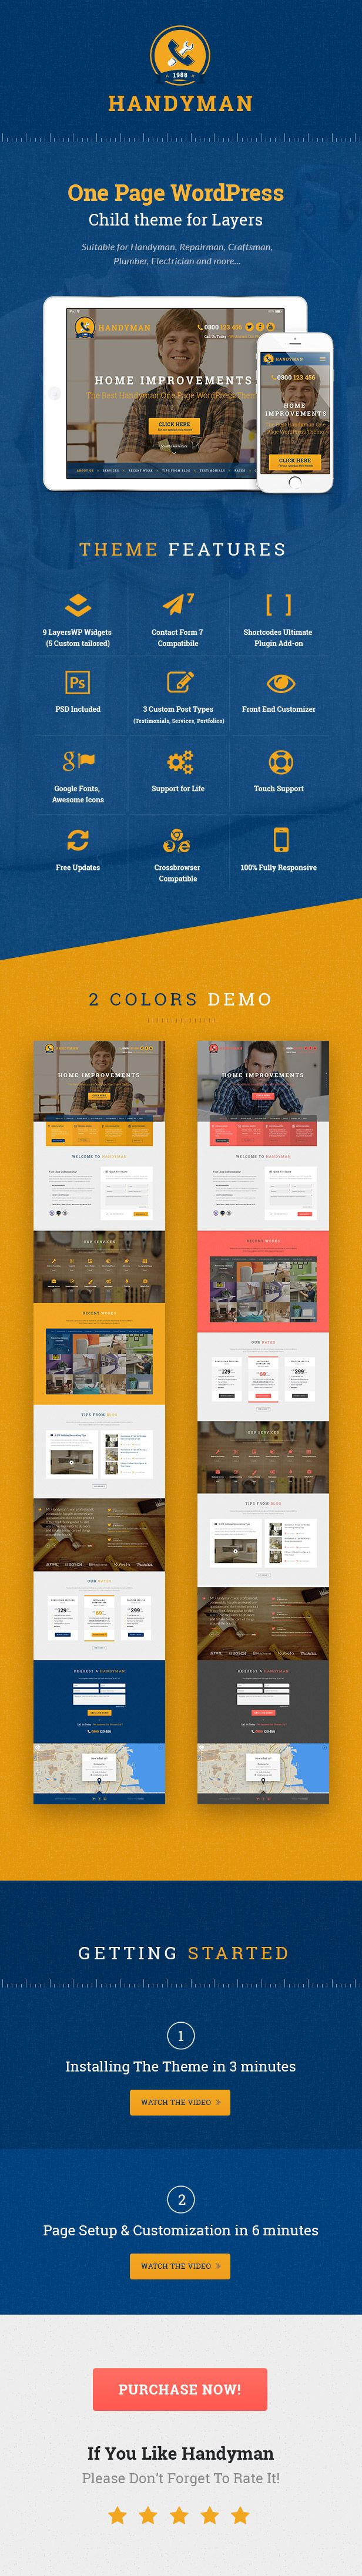 Check out our amazing #Handyman #WordPressTheme on #ThemeForest made by Theme Laboratory